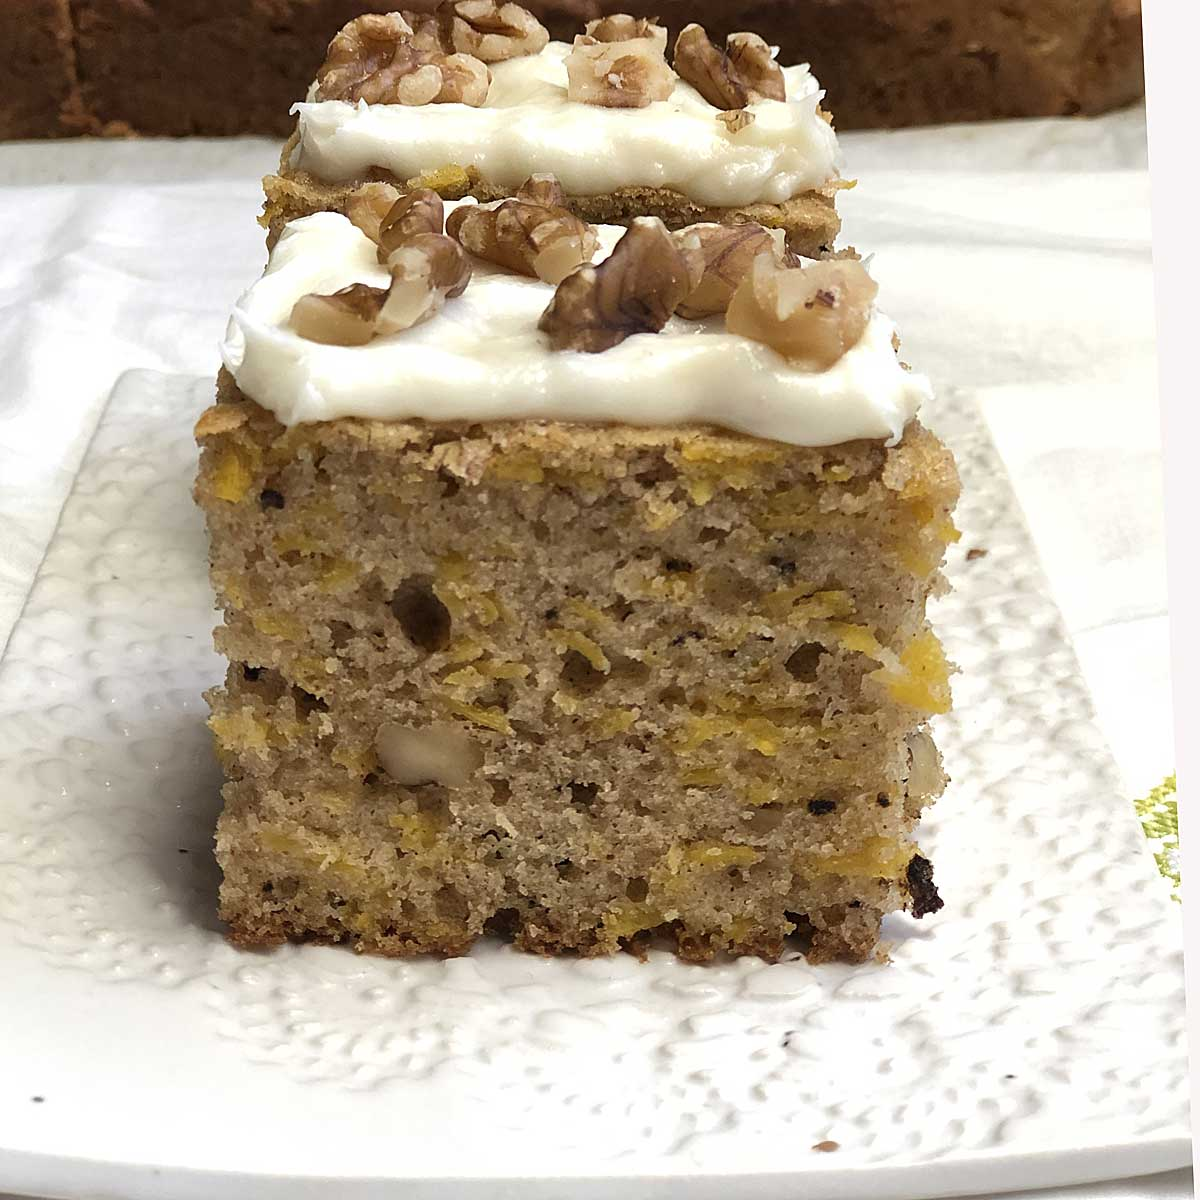 butternut squash cake made with oil instead of butter